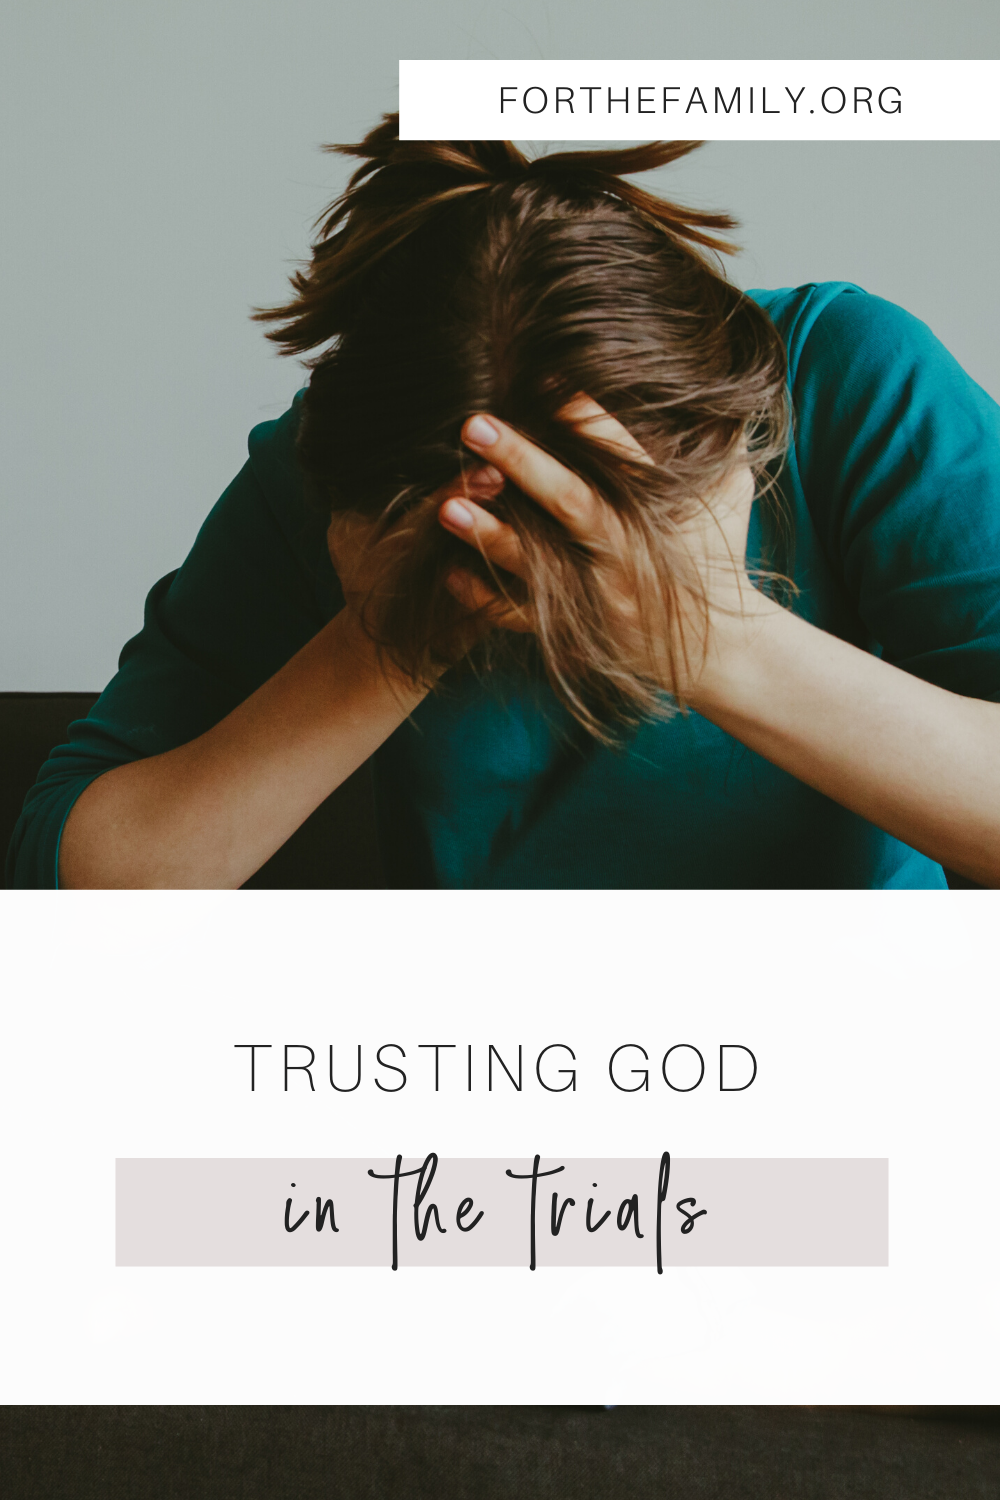 Life can be really hard. How do we get through the seemingly impossible circumstances we face? Join us as we talk about how we can trust God in the trials.